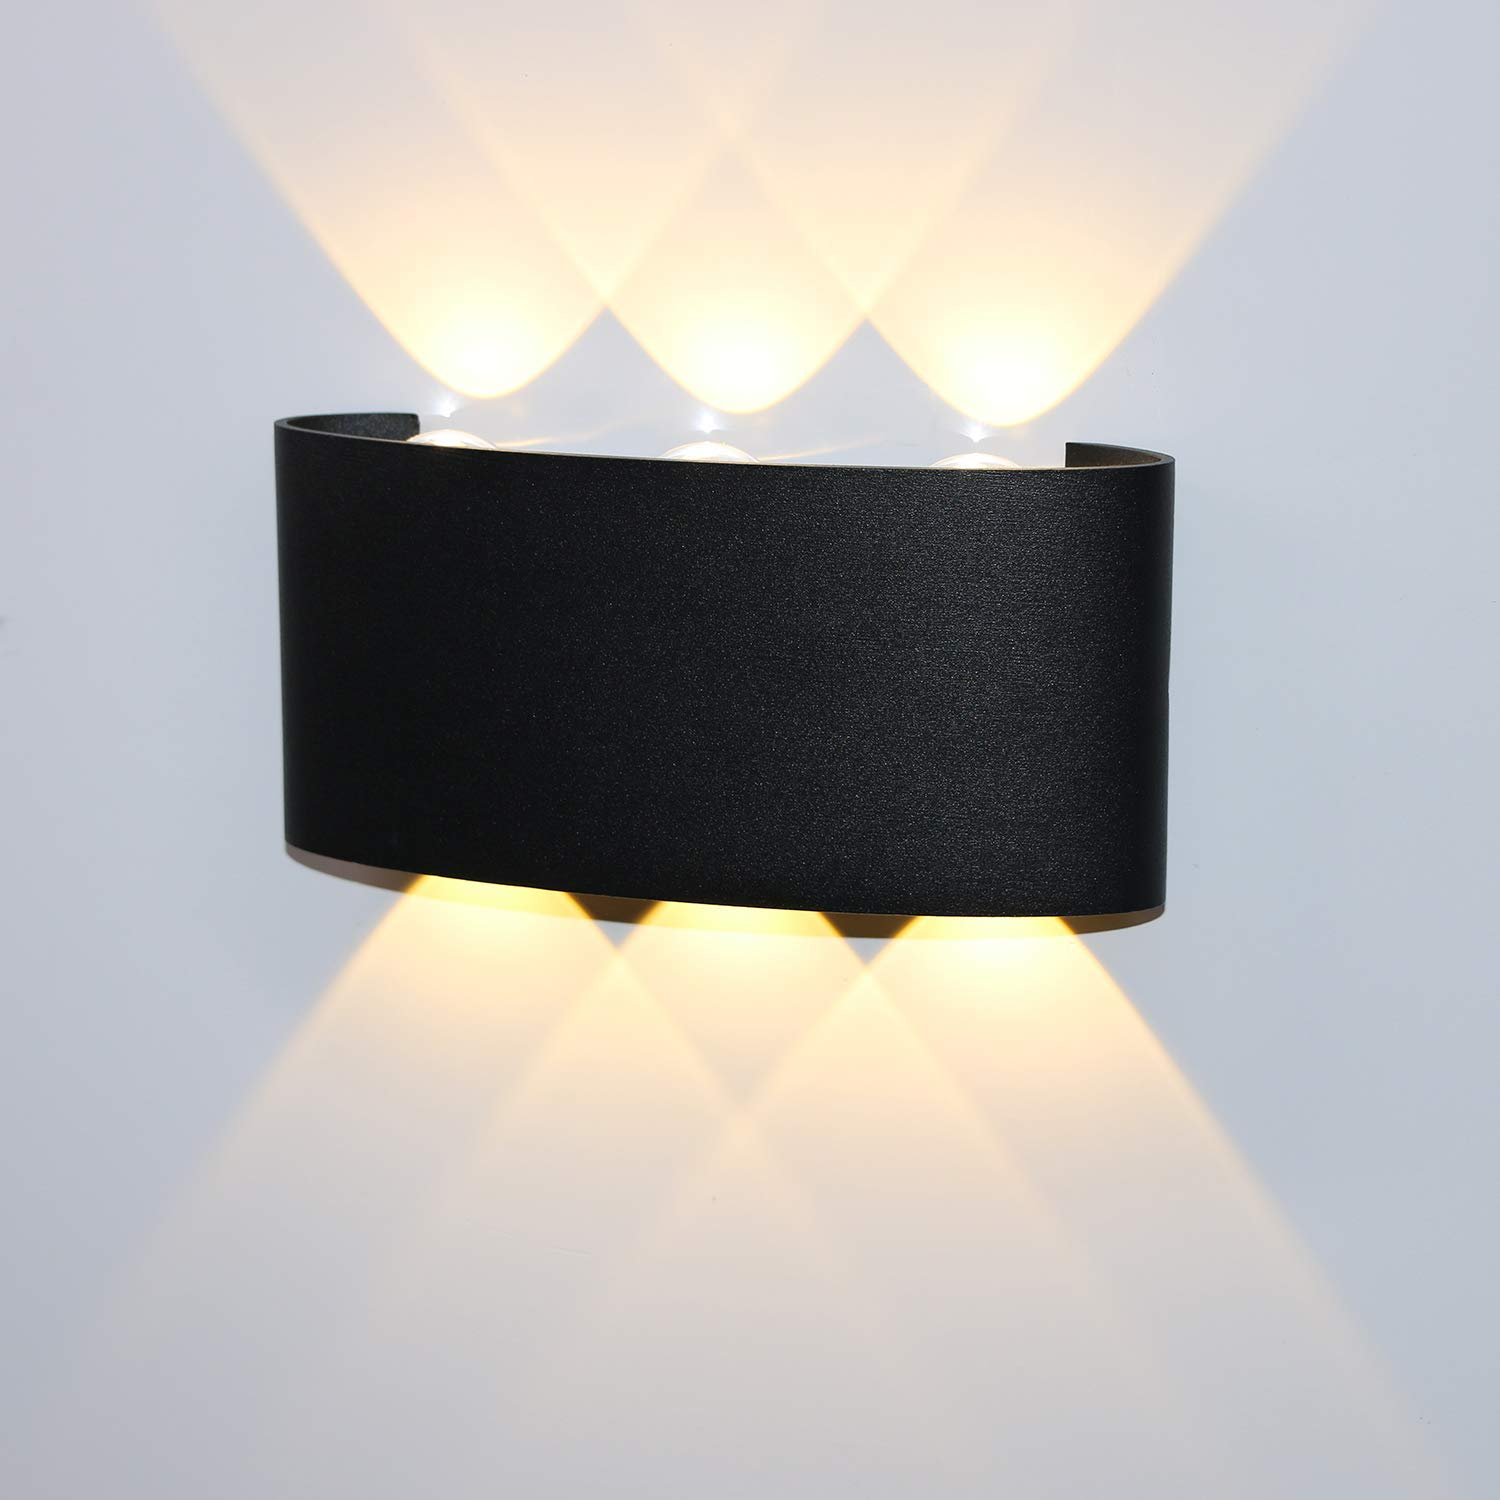 Led Wall Light Ip65 Waterproof Outdoor Lamp For Garden Patio Porch Sconce